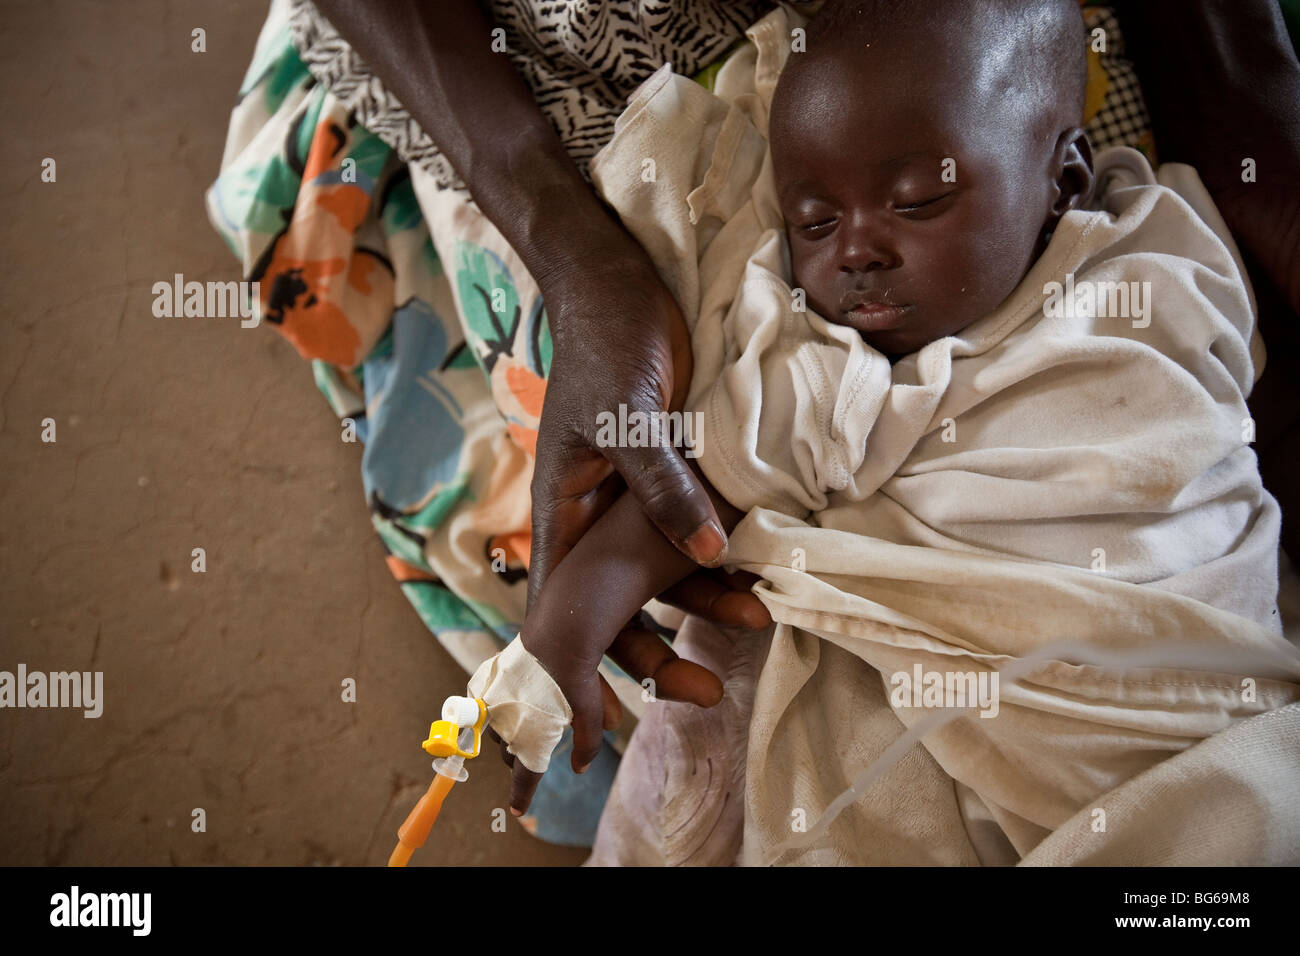 A mother holds her young child who suffers from dehydration in a hospital in Amuria, Uganda. - Stock Image